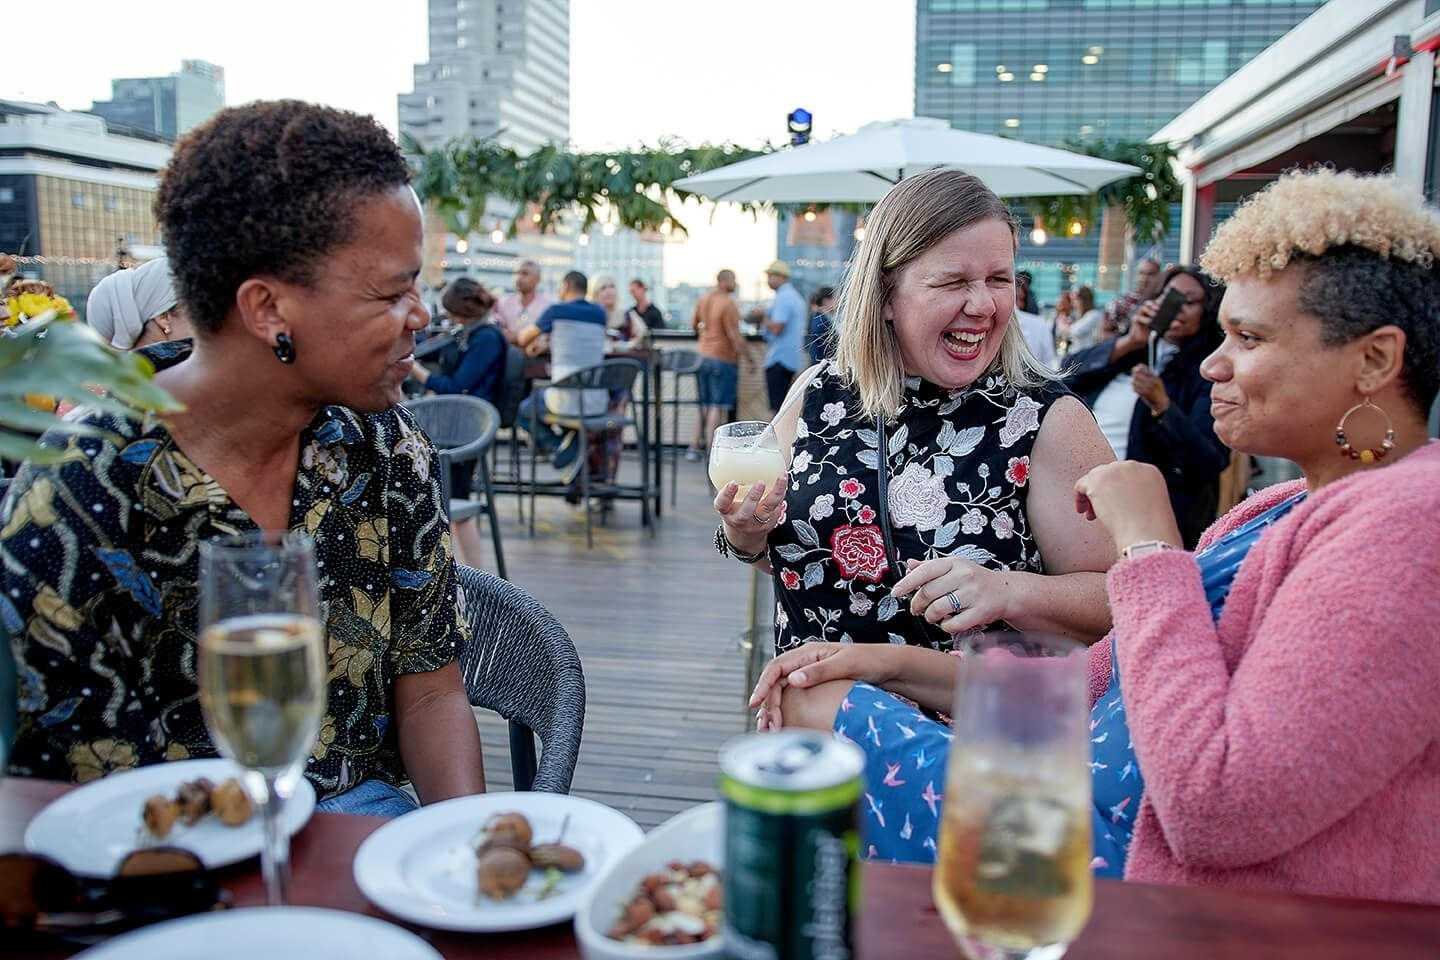 Guest enjoy the vibe at the Cape Town International Convention Centre (CTICC) new venue, the Mountain View Terrace as part of its Summer Nights promotion.